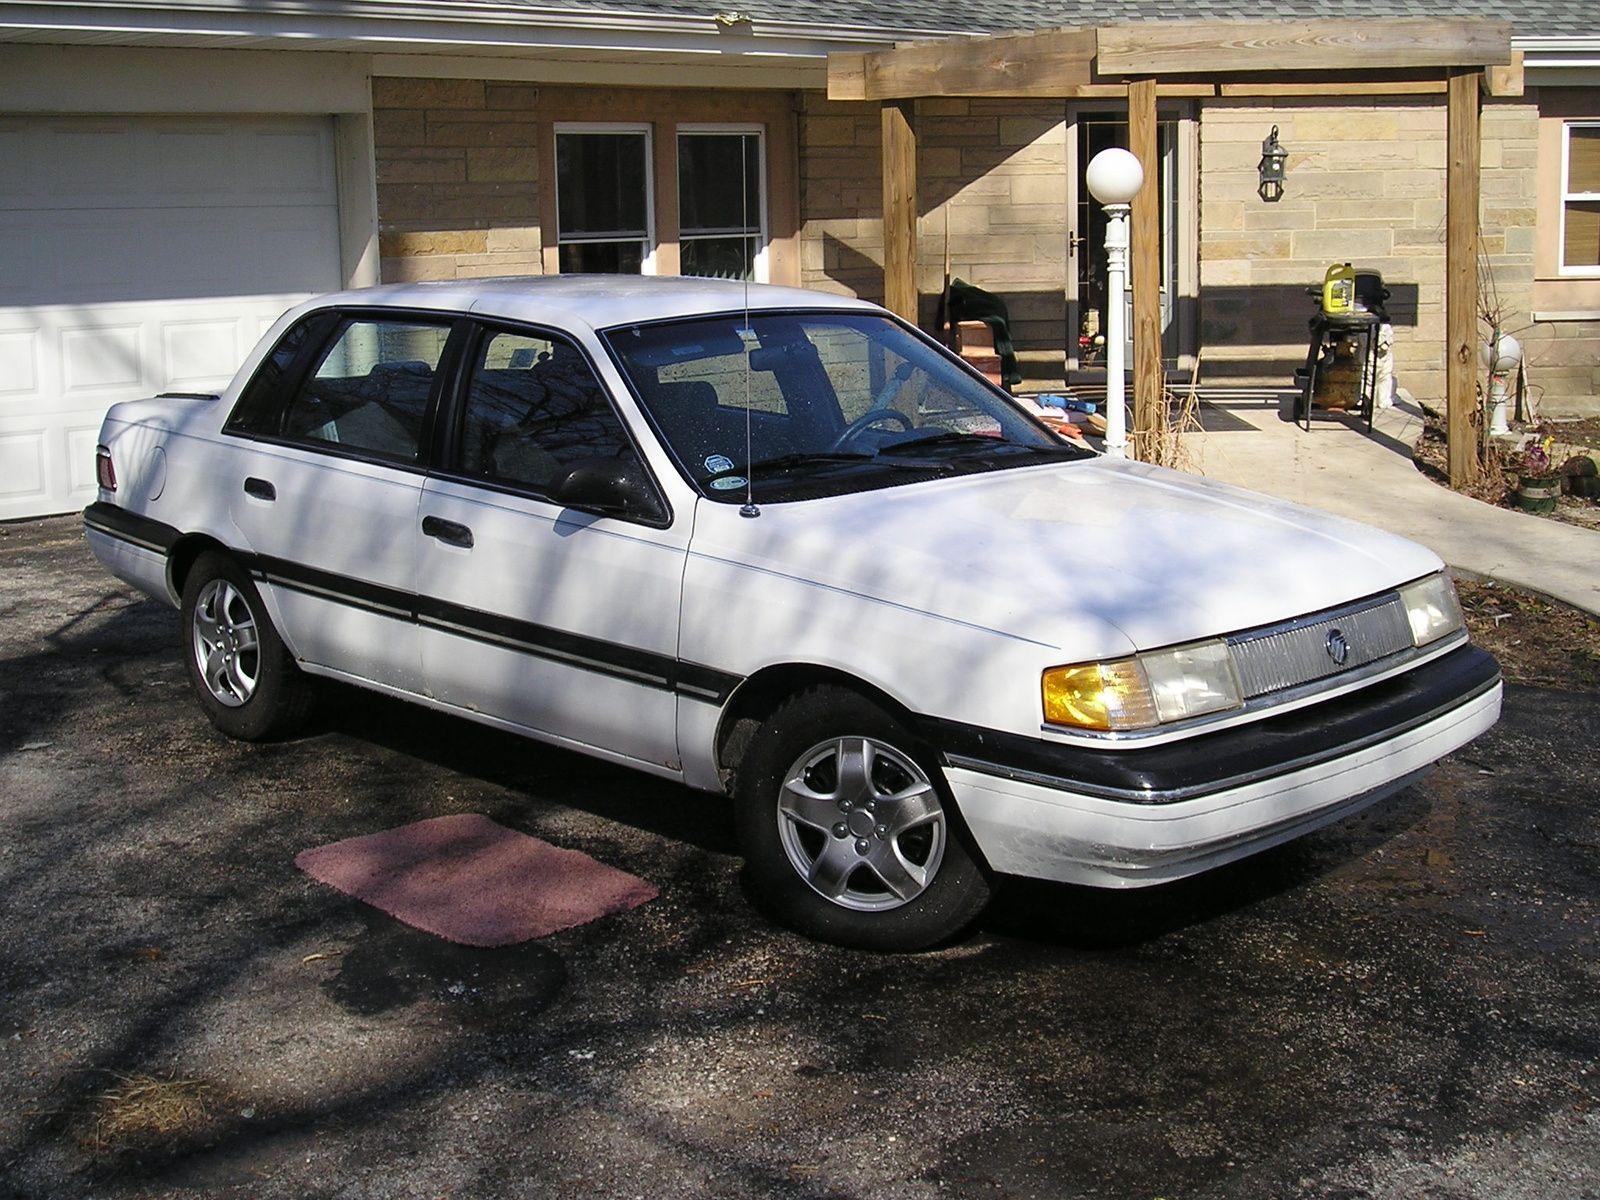 1990 Mercury Topaz 4 Dr Gs Sedan Picture Exterior Sedan